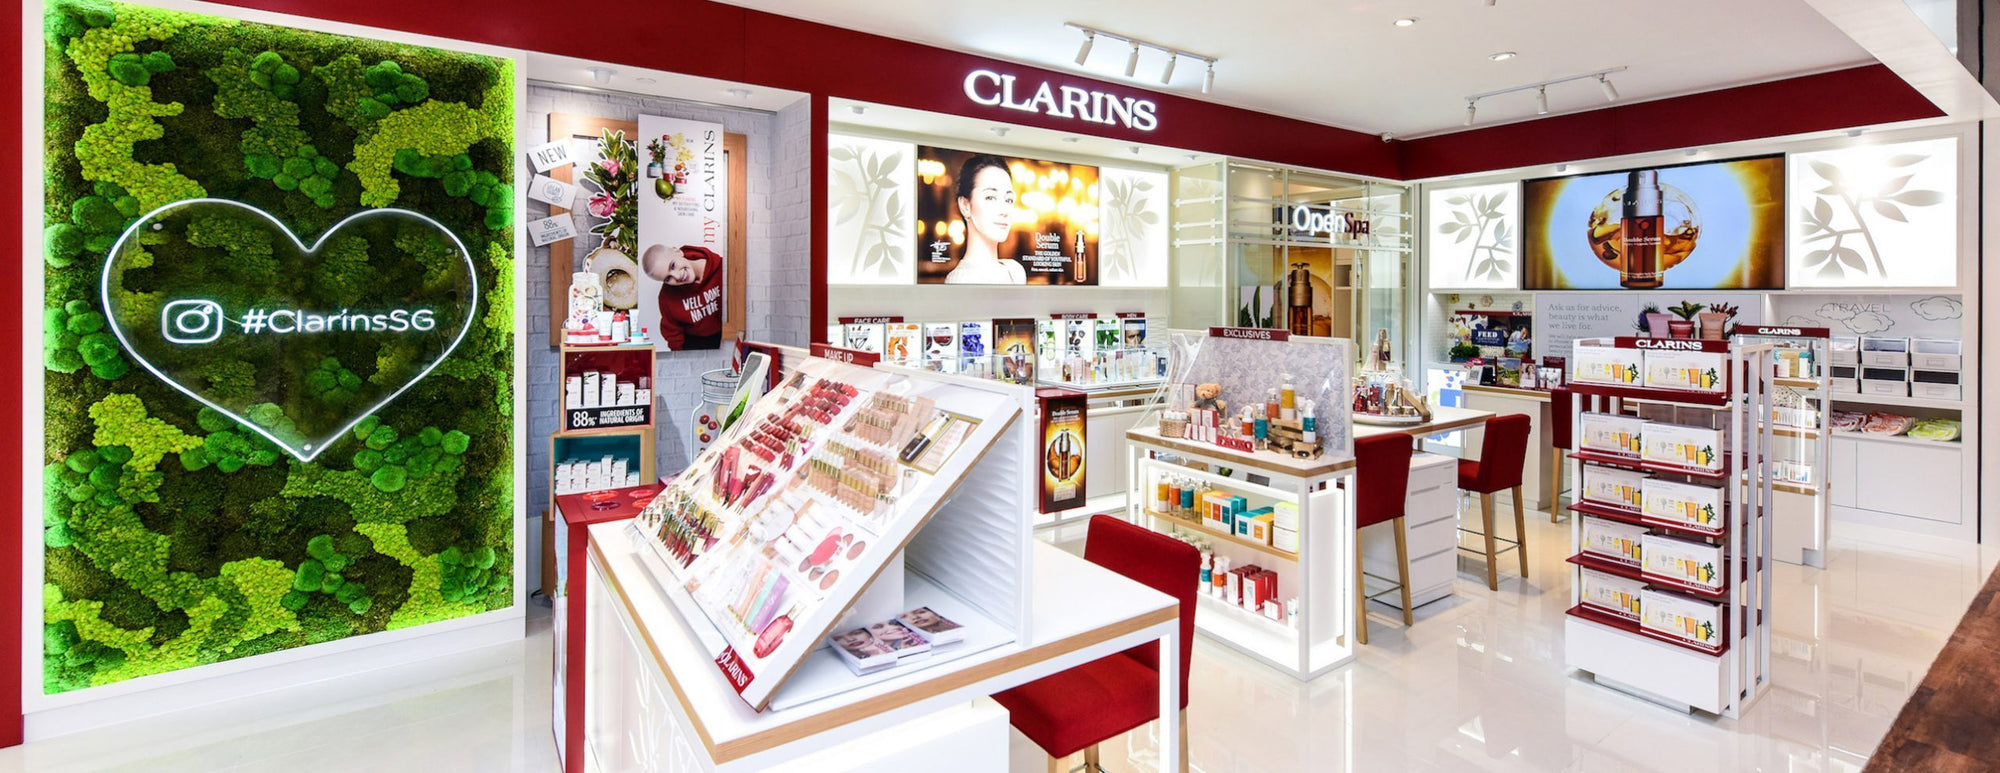 Experience Clarins' Open Spa Services And More At The BHG Beauty Hall